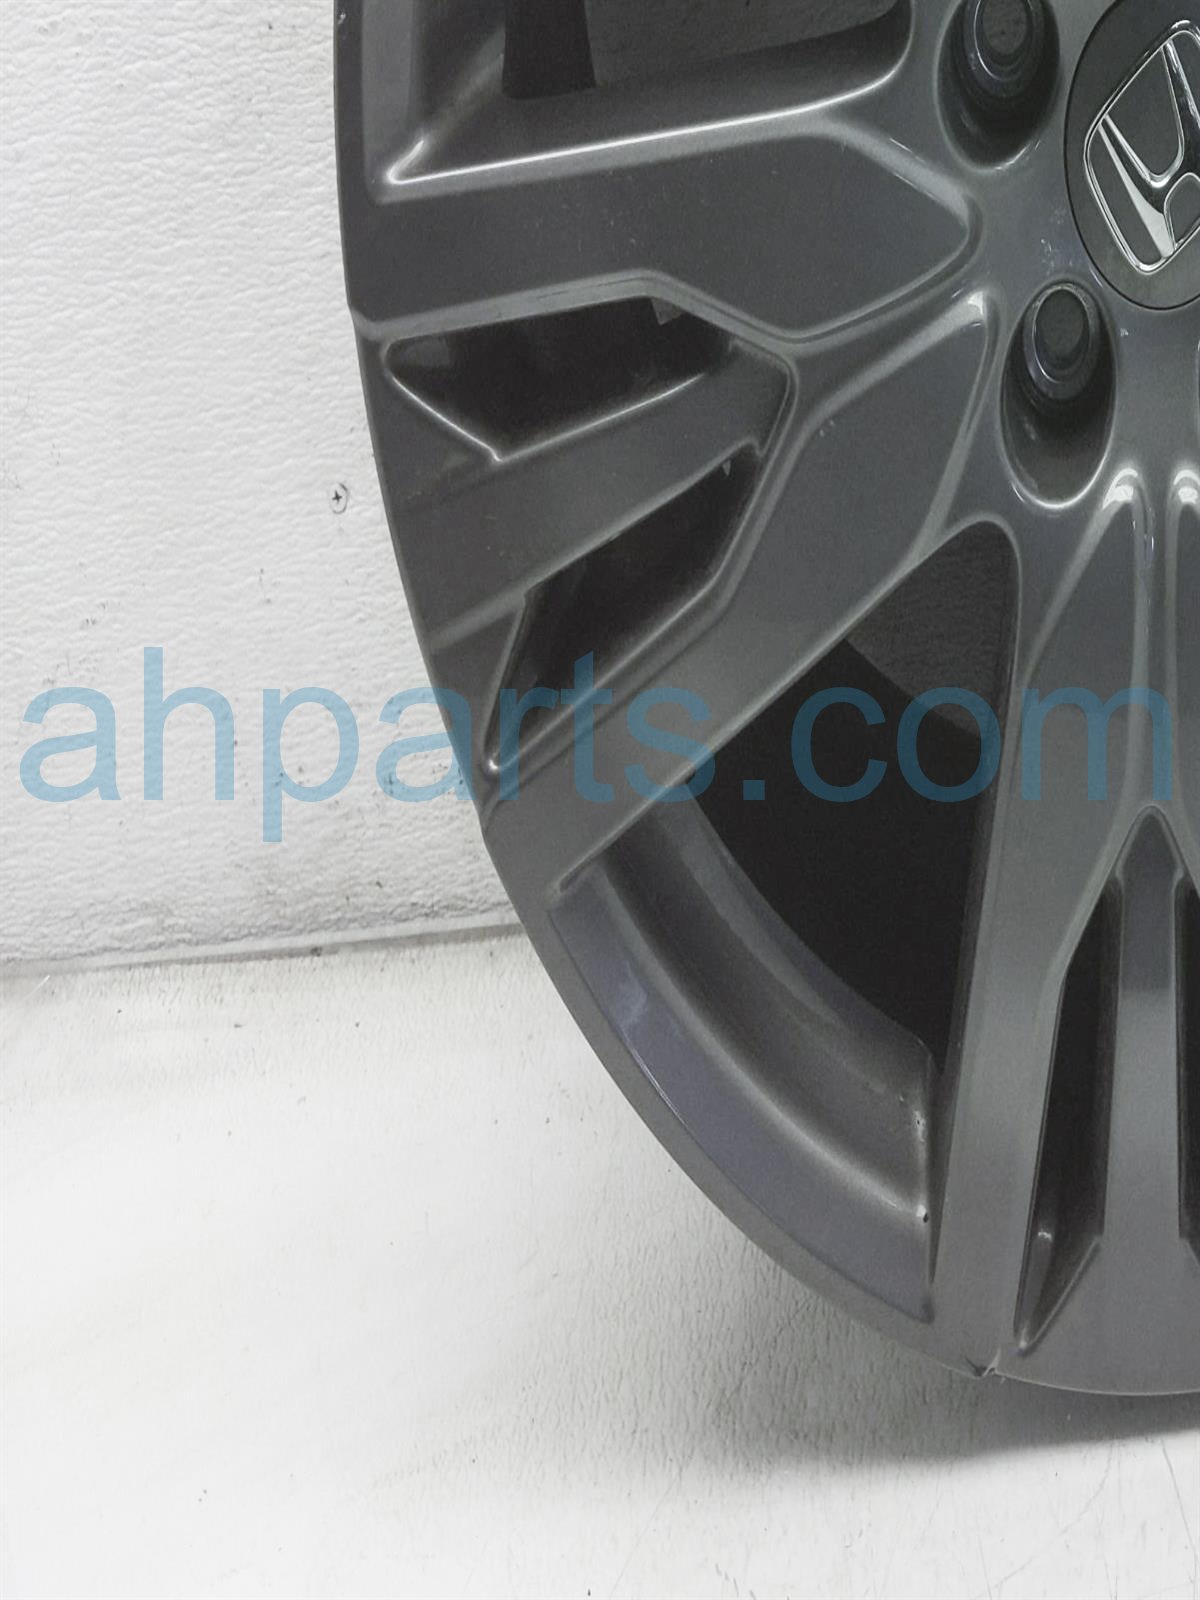 2019 Honda Passport Front Passenger Wheel/rim   Scuffs / Nick 08W20 TG7 101A Replacement